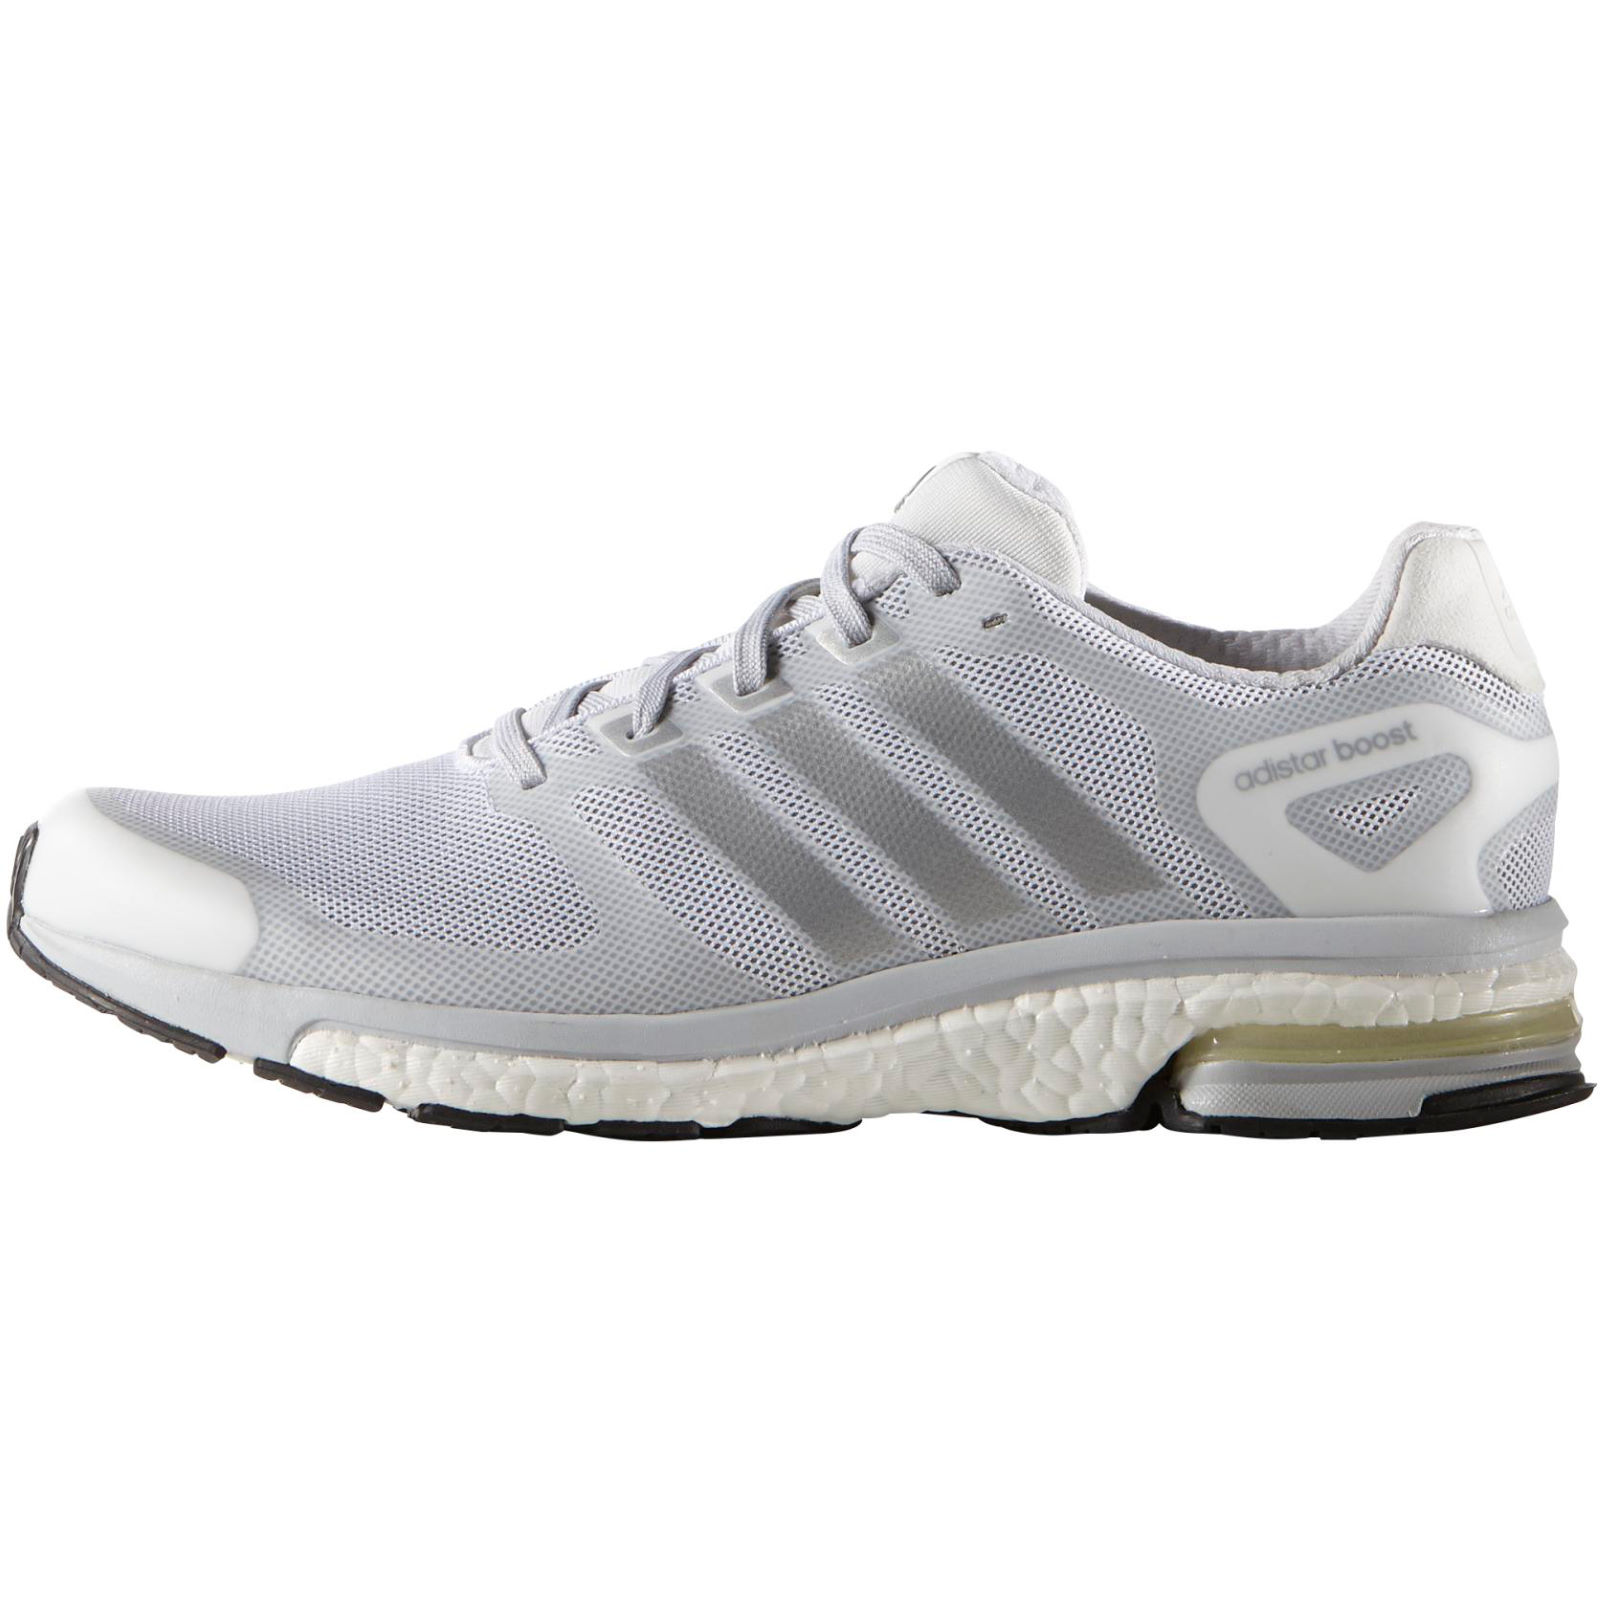 brand new 8ee63 ba651 Top Features of the adidas Womens Adistar Boost Glow Shoes (AW15)